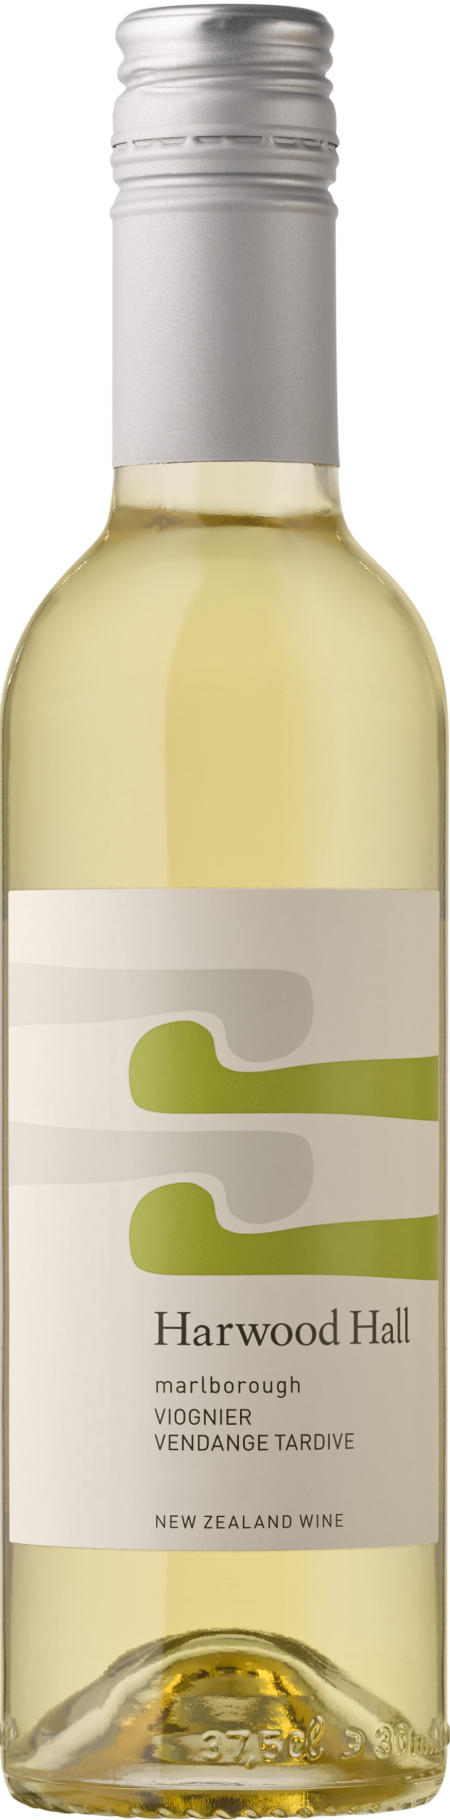 Harwood Hall Viognier 'Vendage Tardive' 2012 (375ml)-0